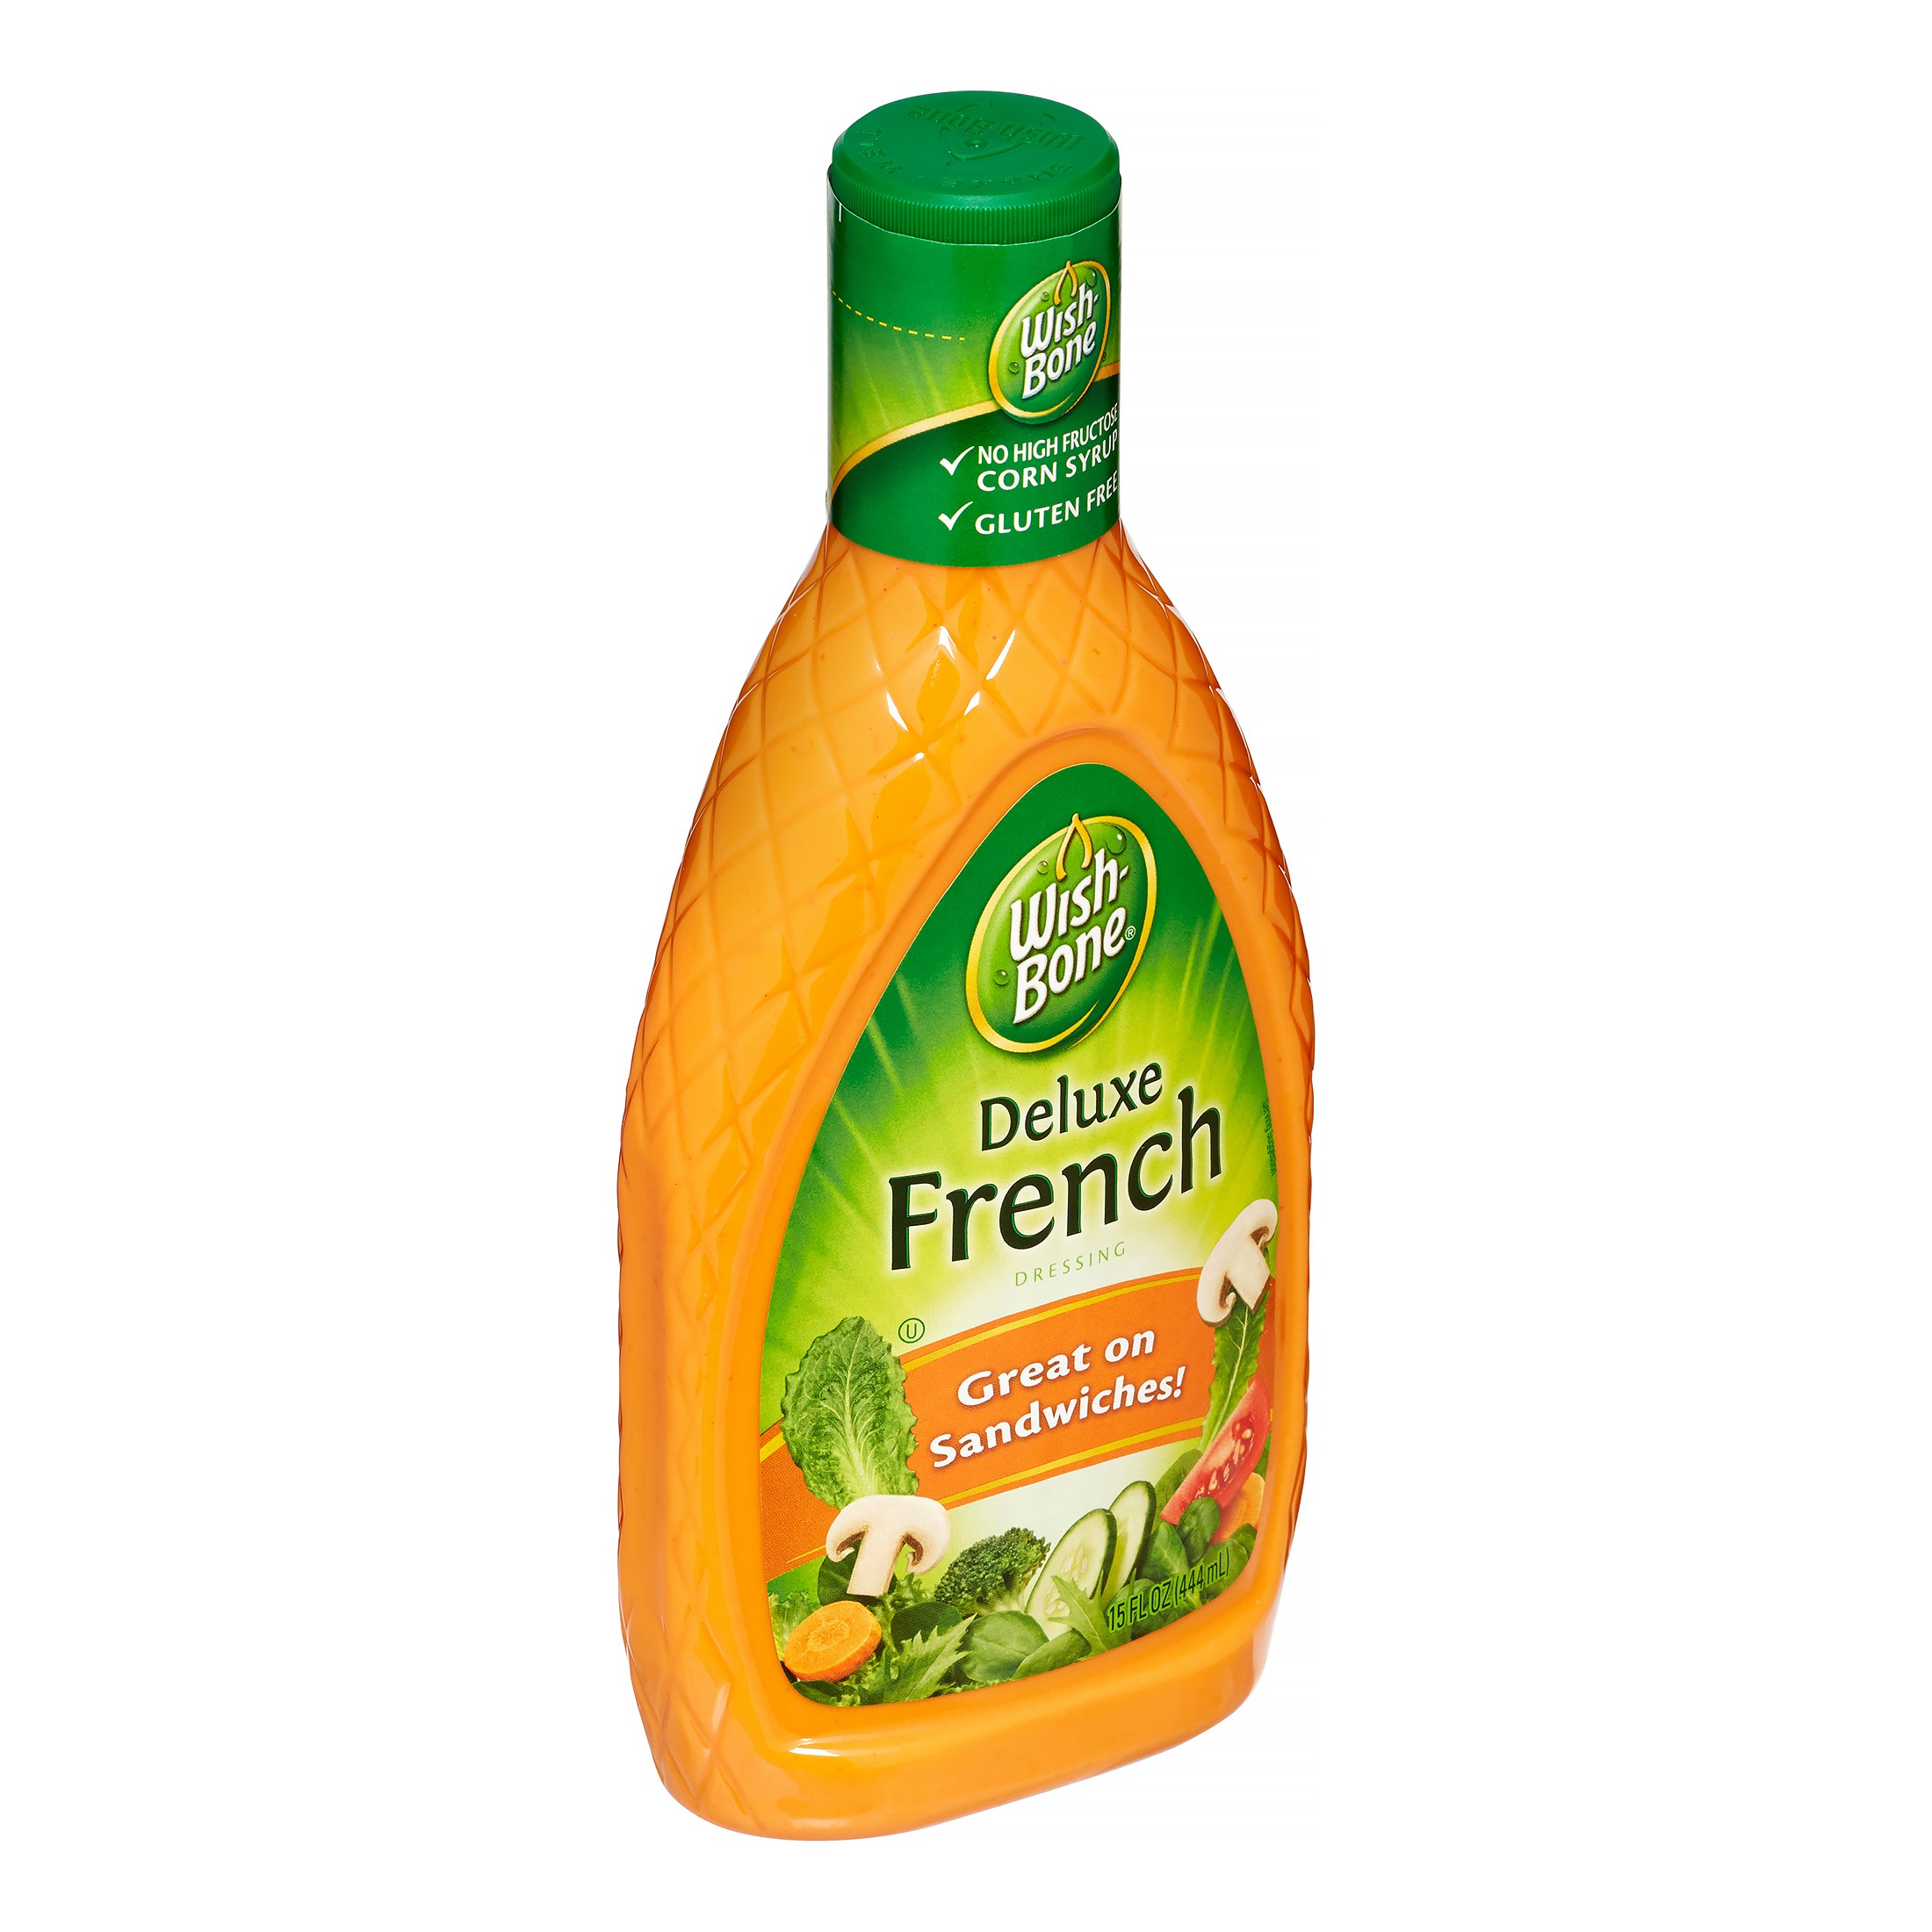 (3 Pack) Wish-Bone Salad Dressing, Deluxe French, 15 Fl Oz